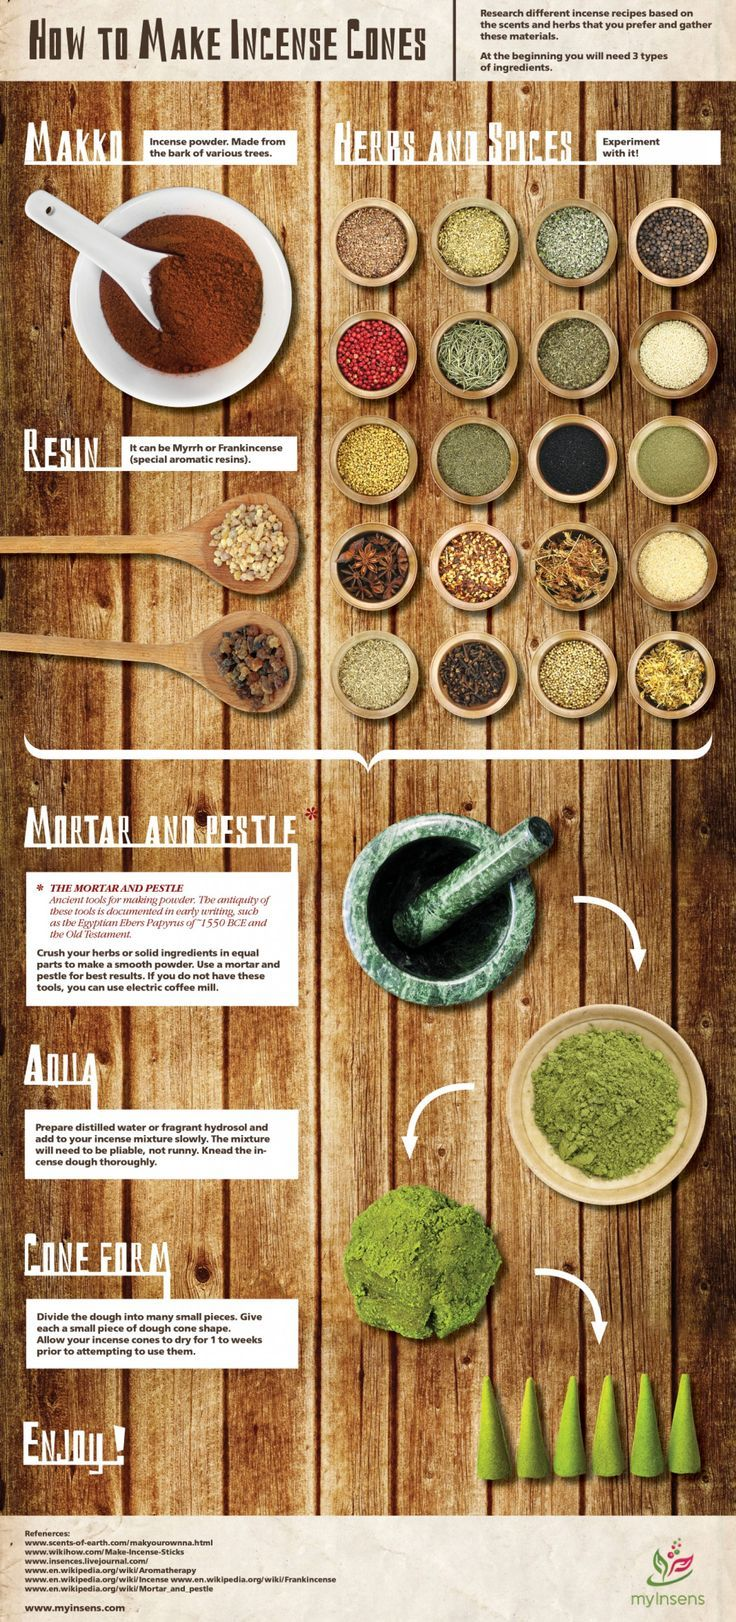 How to make Incense Cones Infographic DESIGNED BY anastasiya.krast